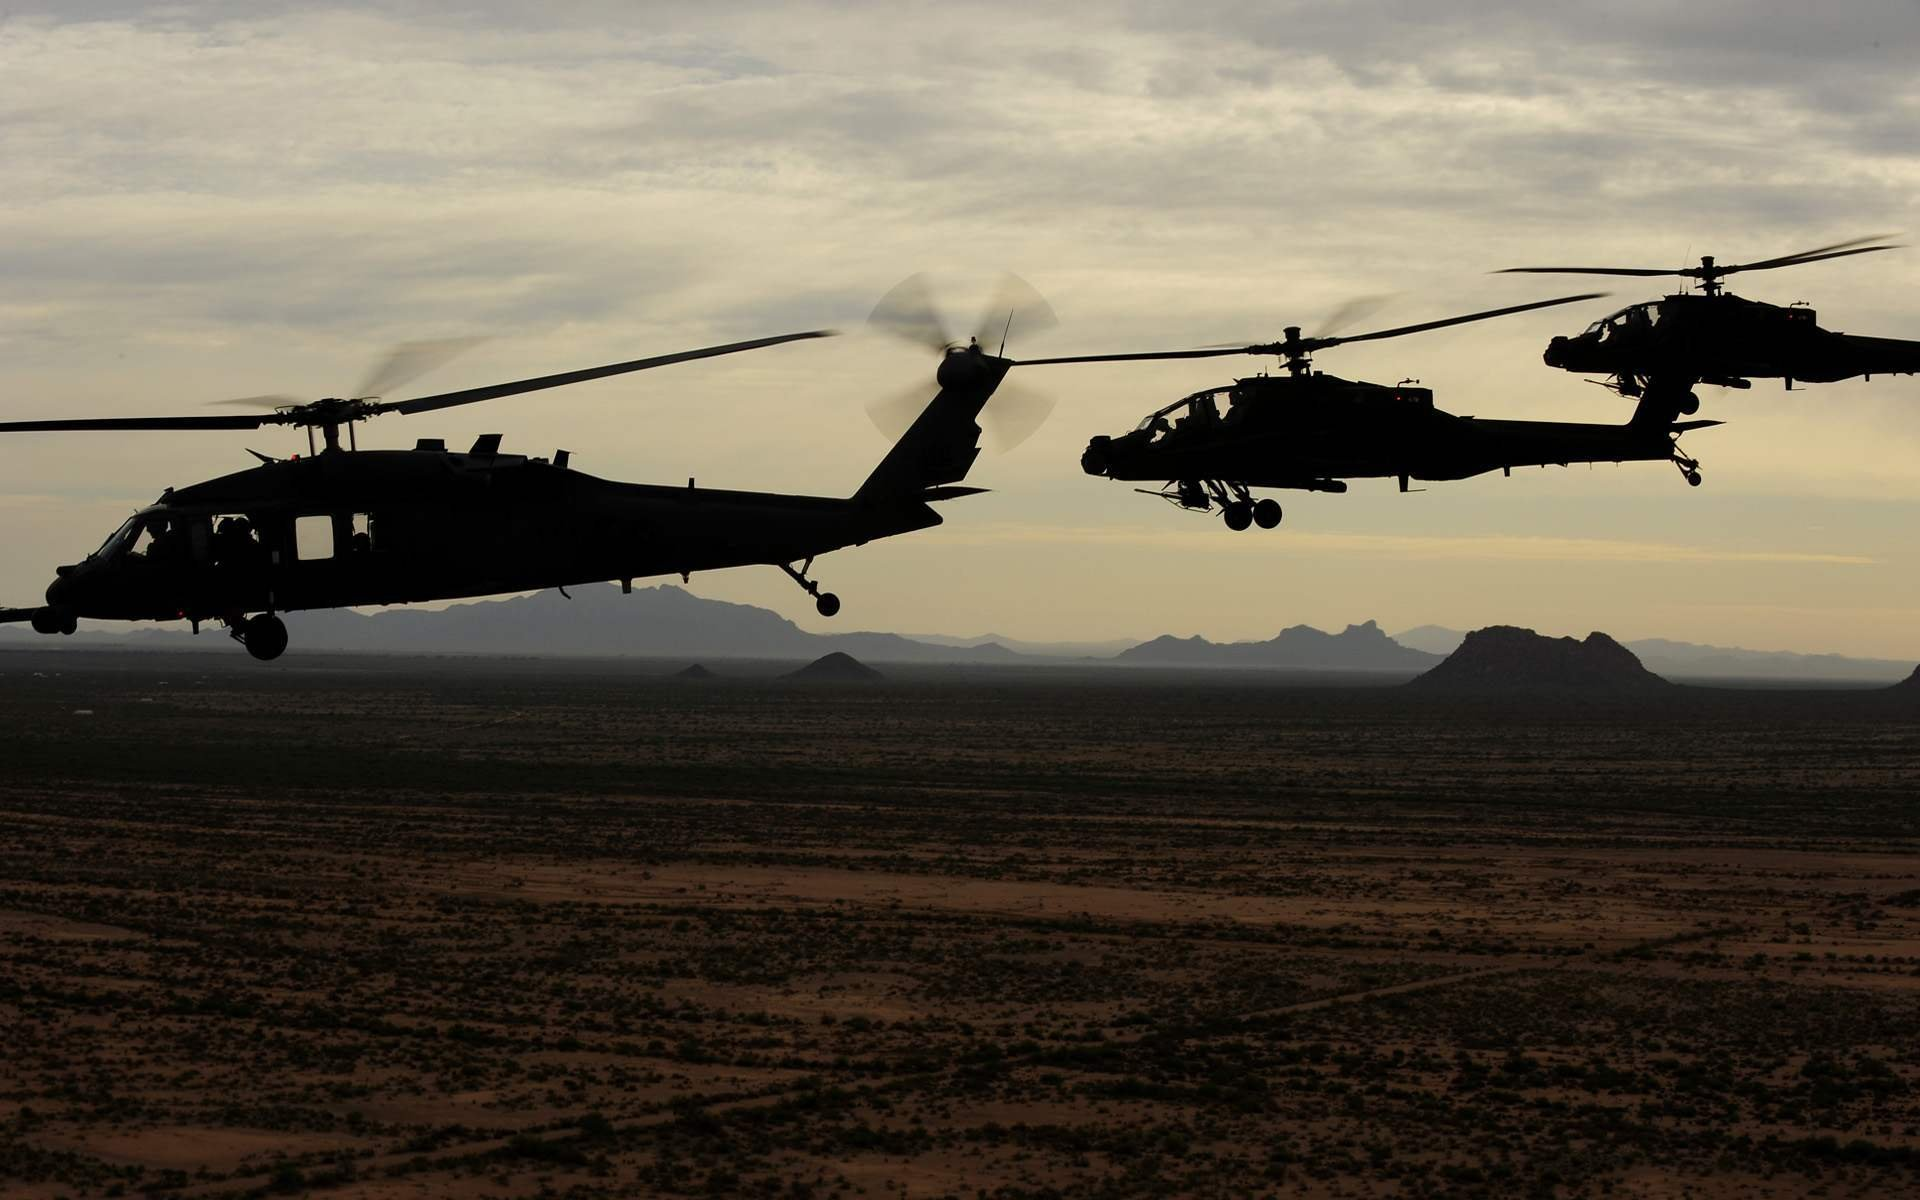 Black helicopter pictures — 2